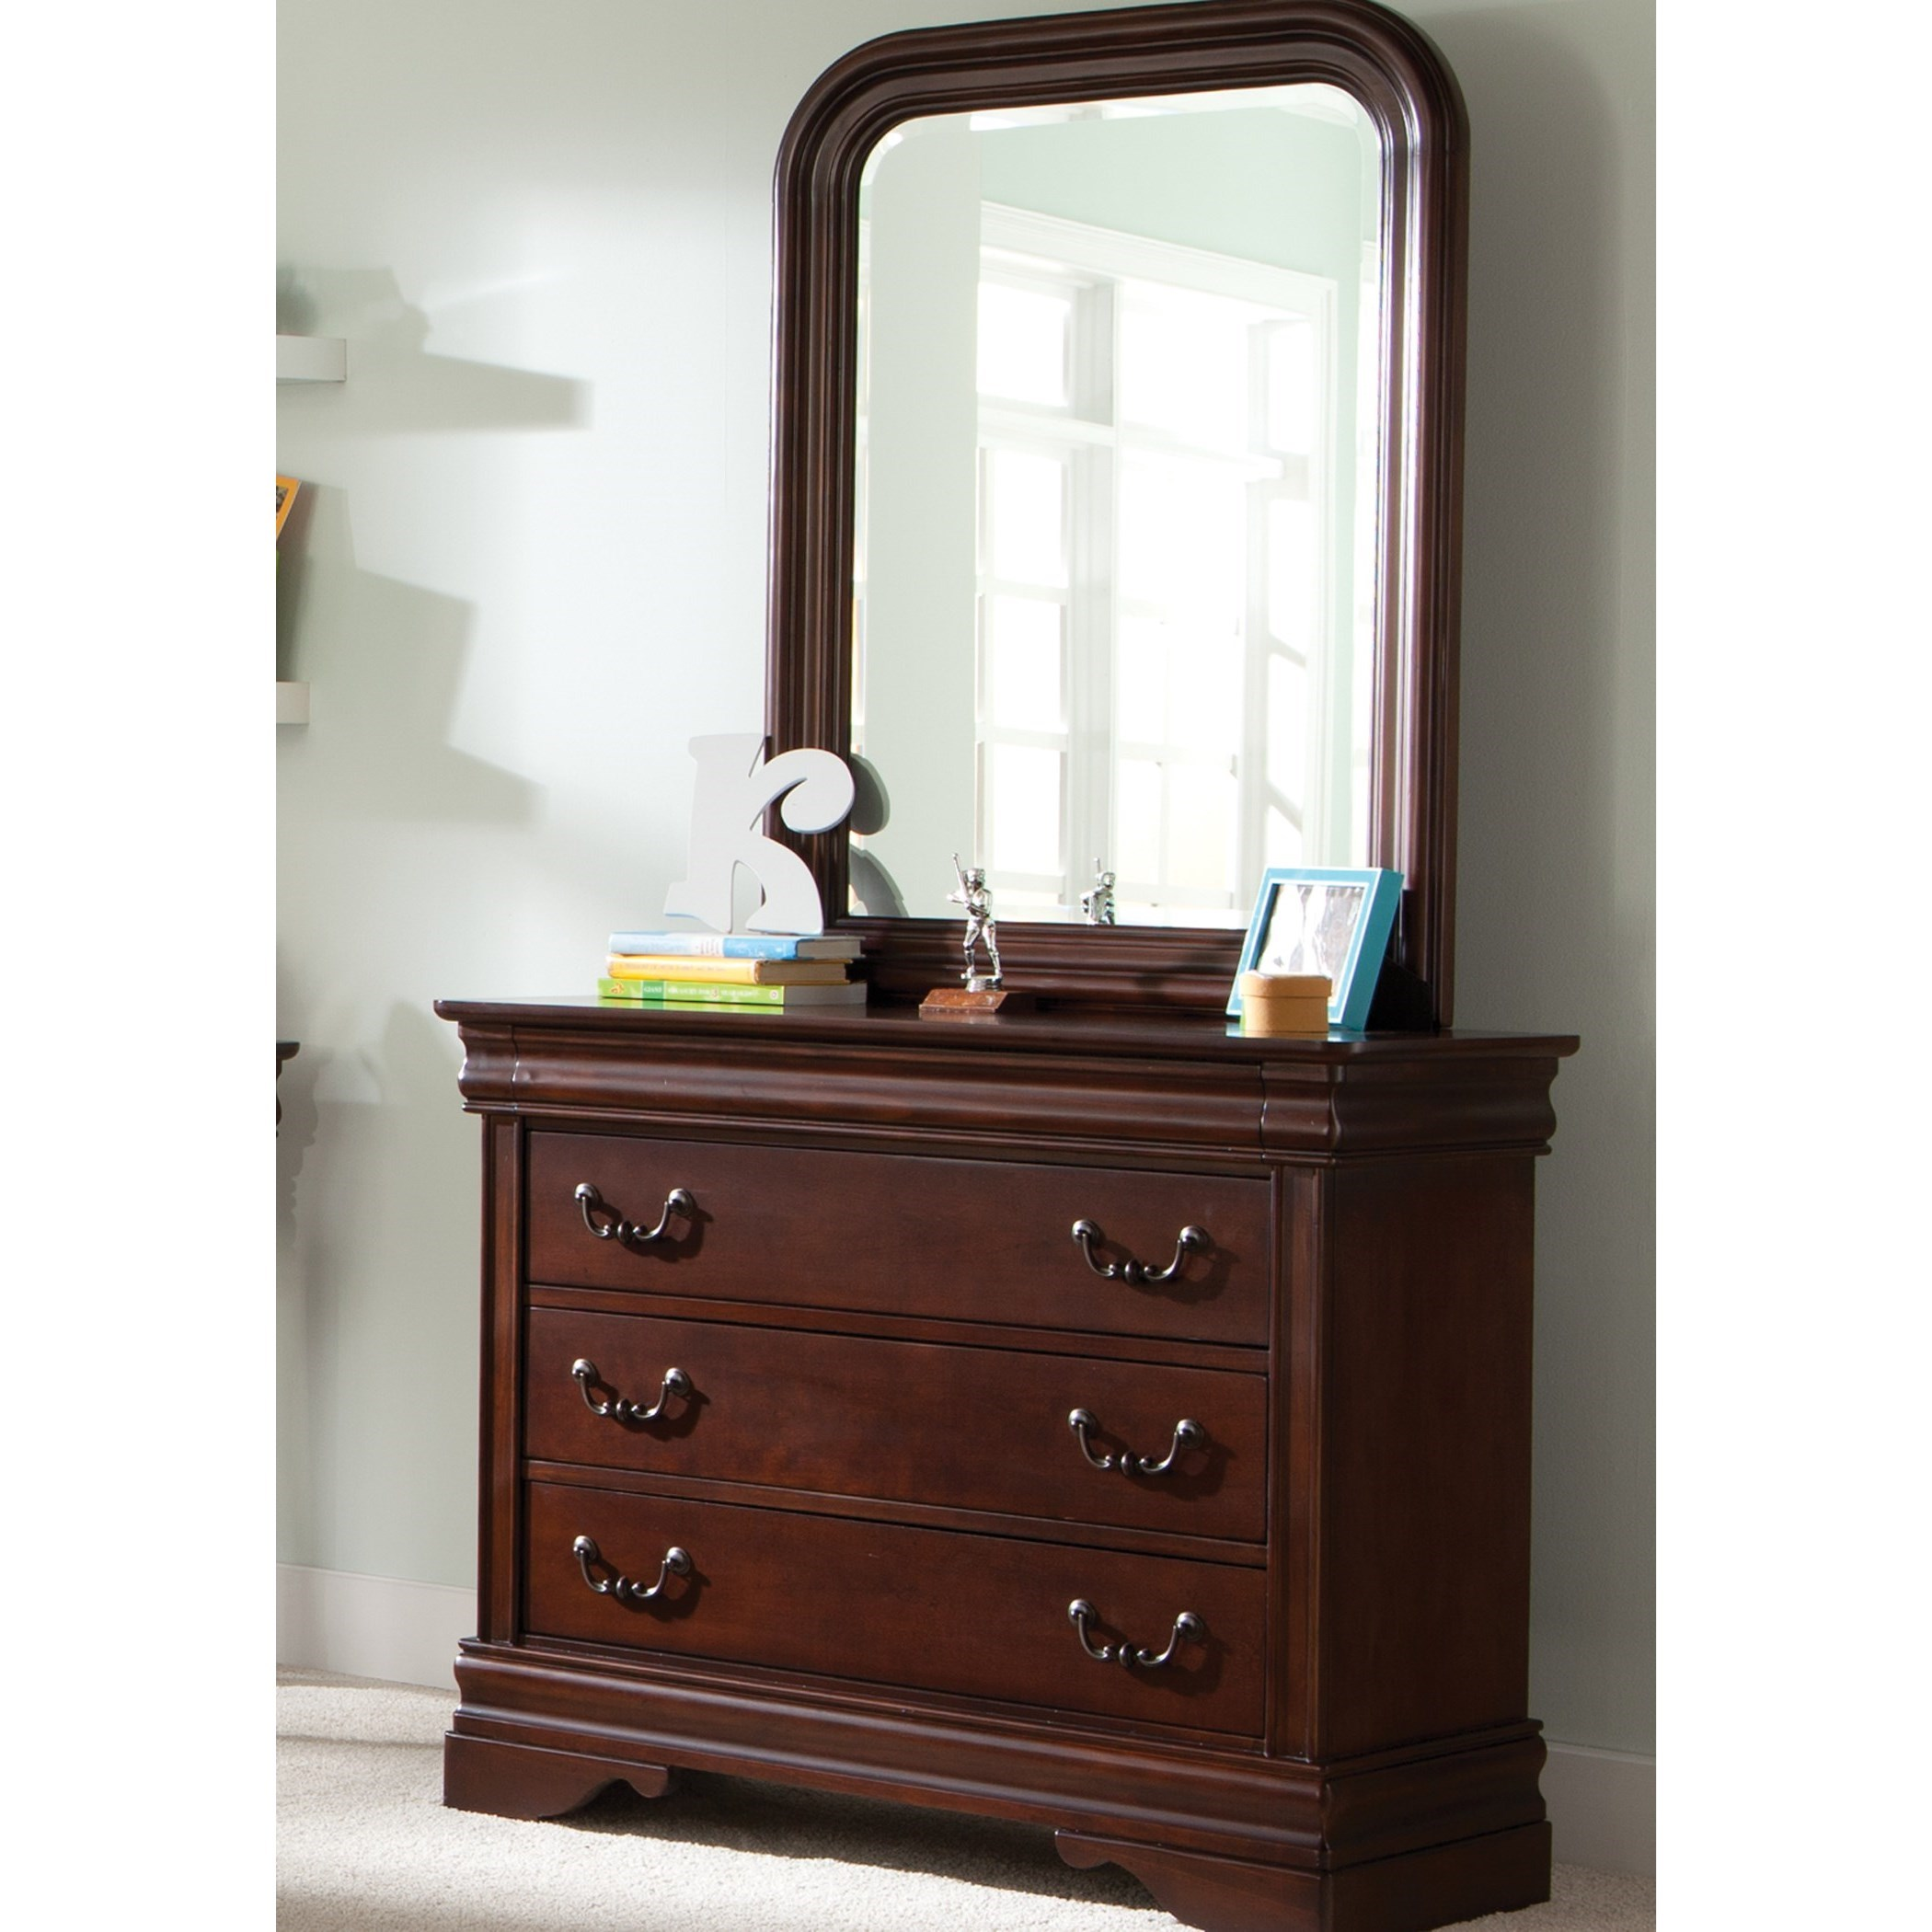 Liberty Furniture Carriage Court Dresser & Mirror - Item Number: 709-YBR-SET50